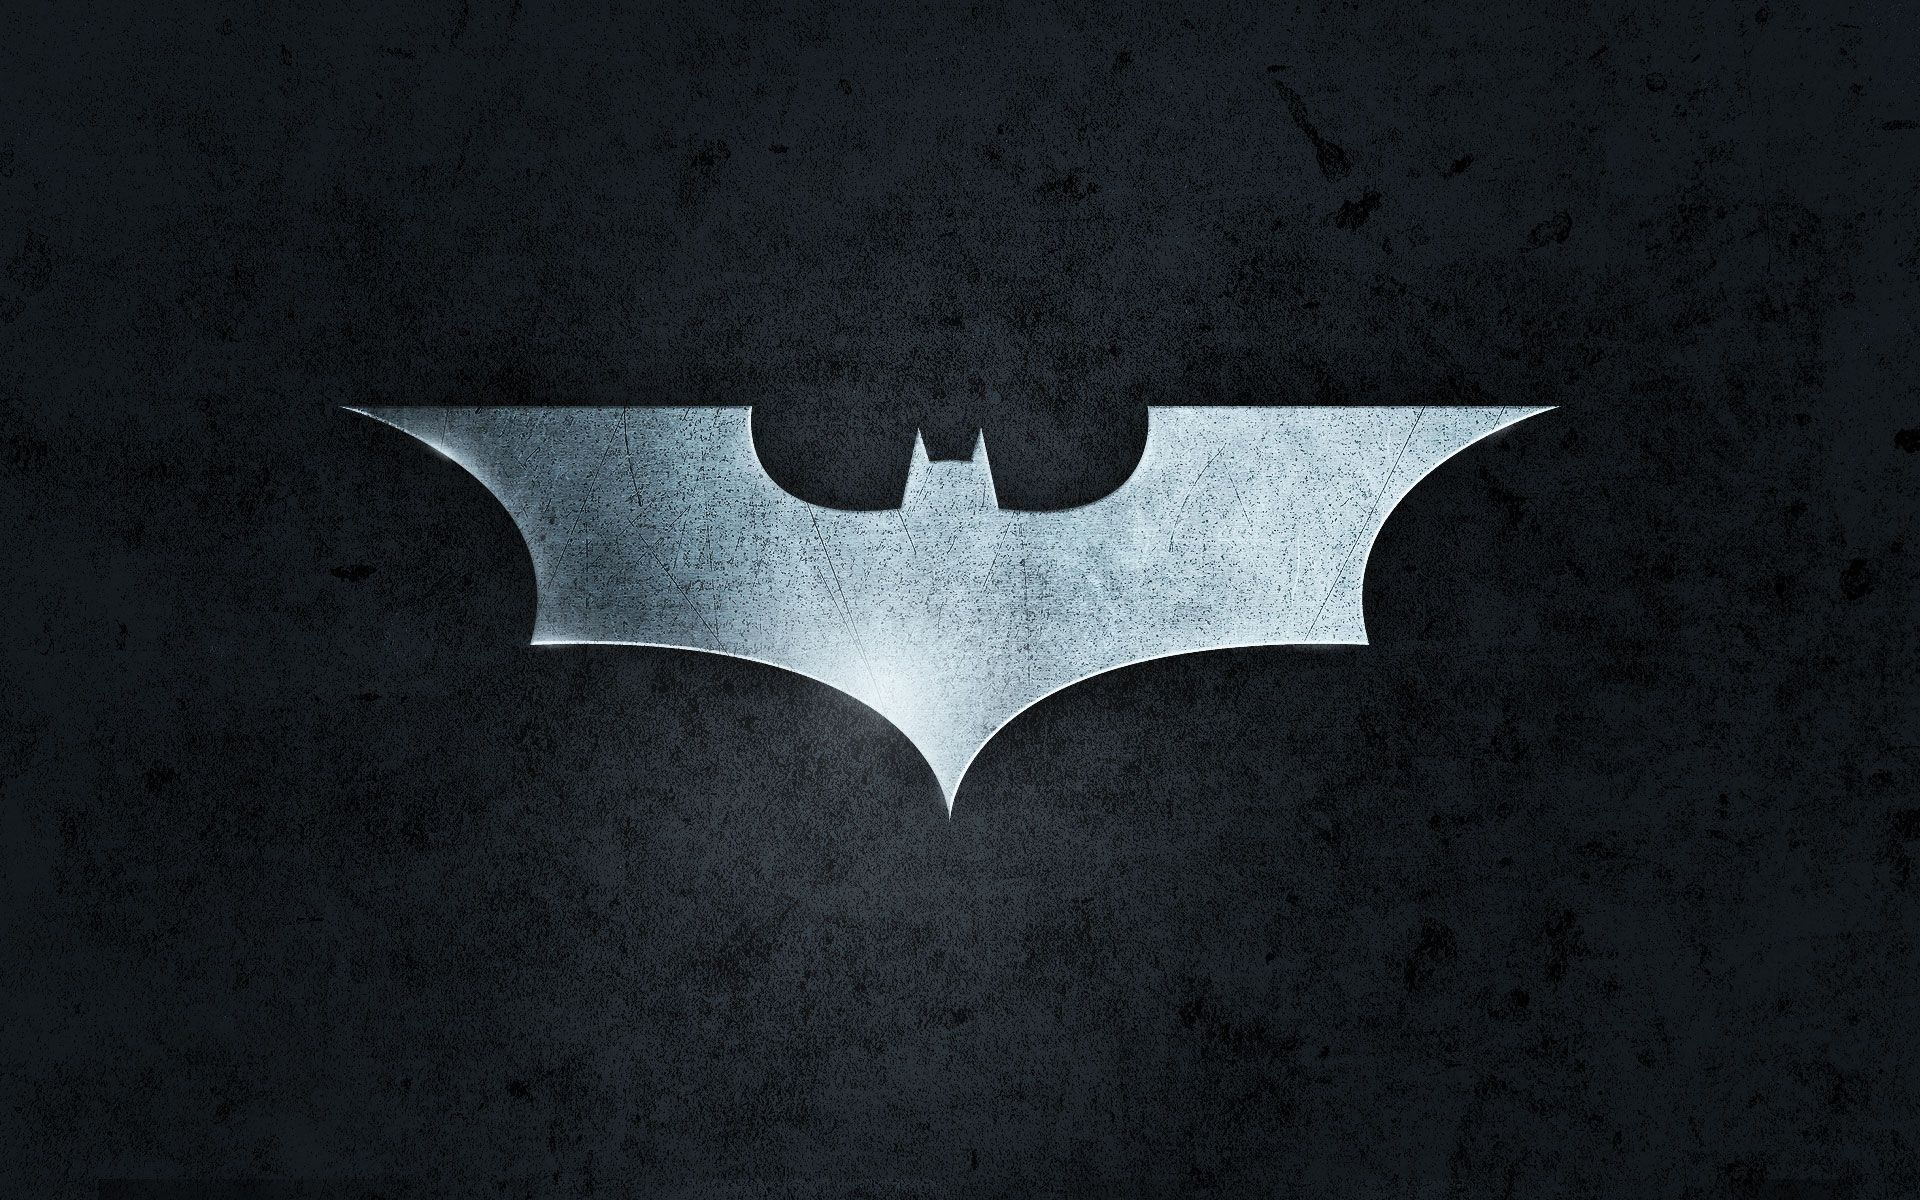 Pin By John Constantine On Constantine Hd Batman Wallpaper Batman Wallpaper Batman Symbol Wallpapers